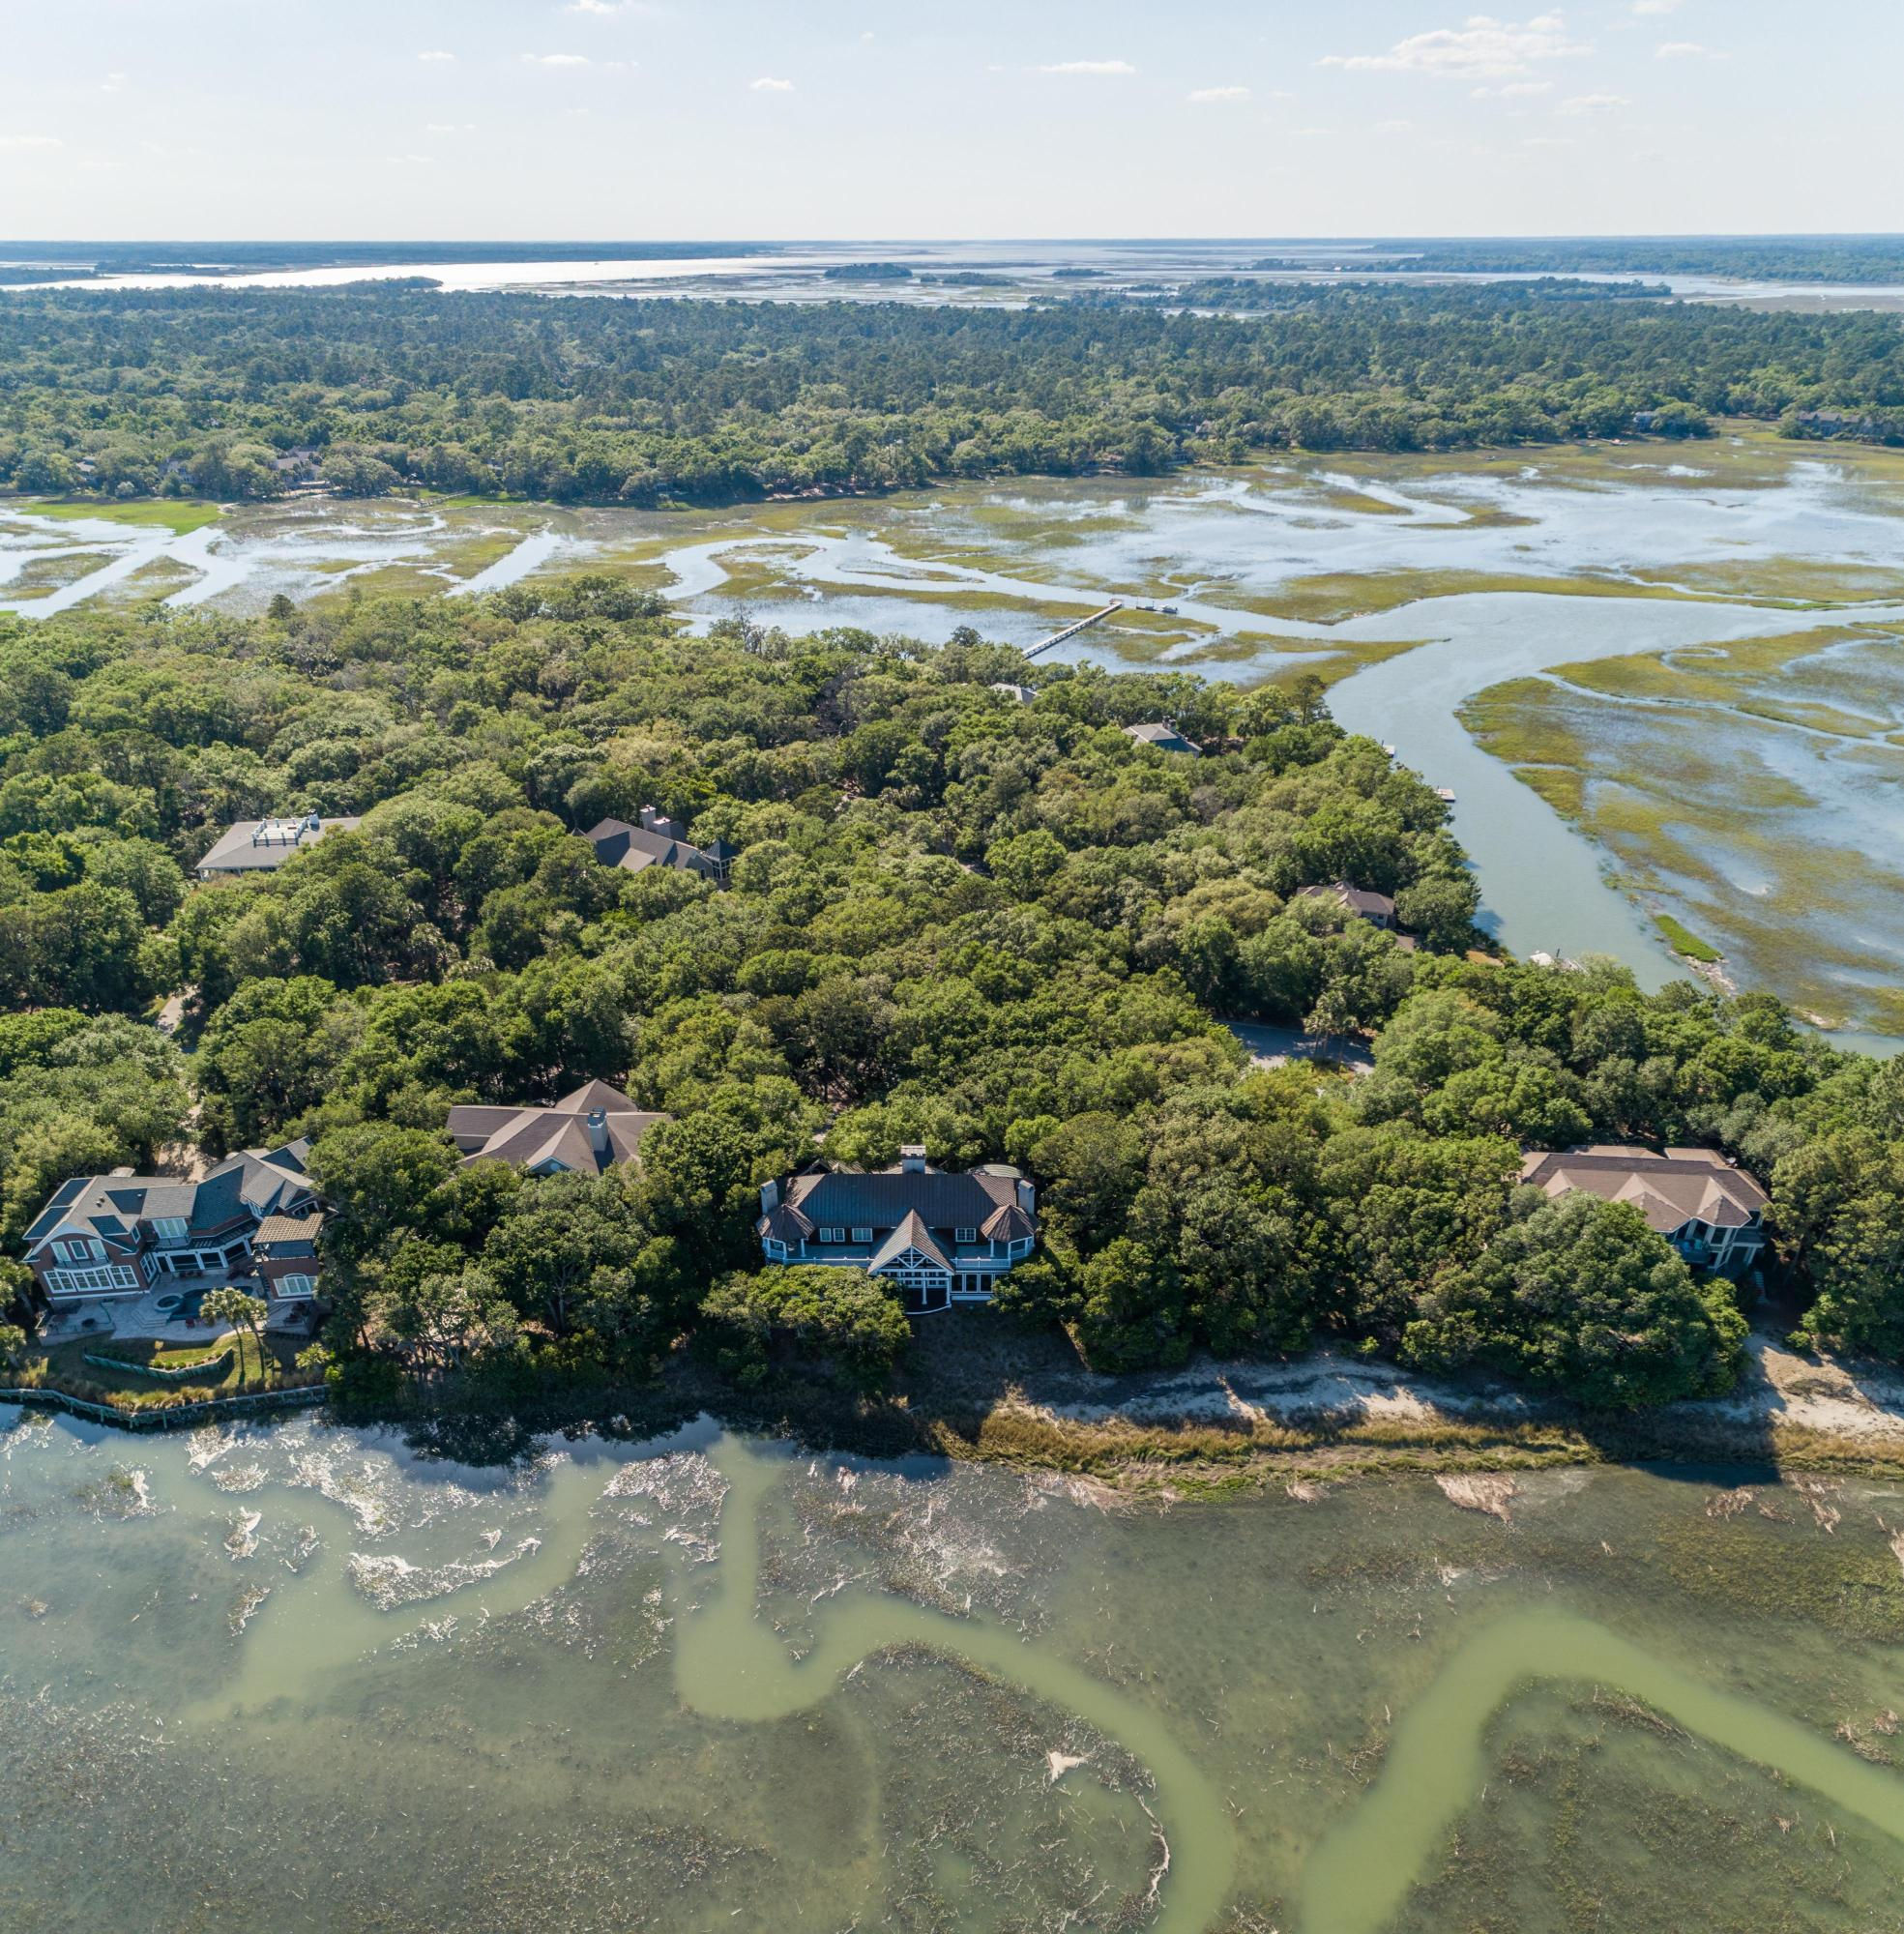 Seabrook Island Homes For Sale - 1161 Oyster Catcher, Seabrook Island, SC - 10